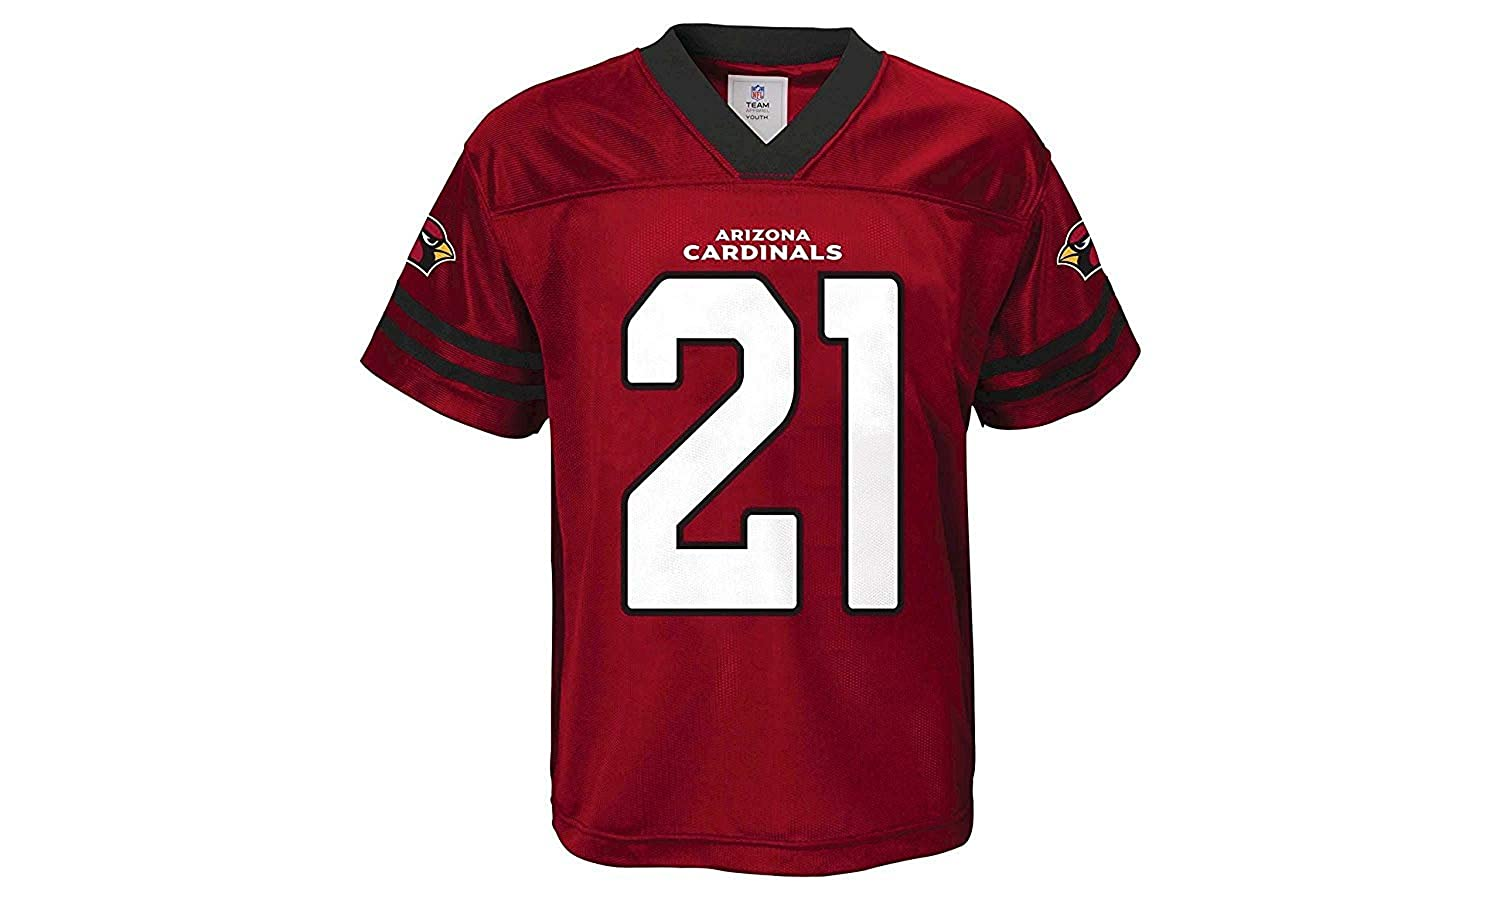 Amazon.com  Patrick Peterson Arizona Cardinals Red Home Player Jersey  Toddler  Clothing f0a5a7108f3f